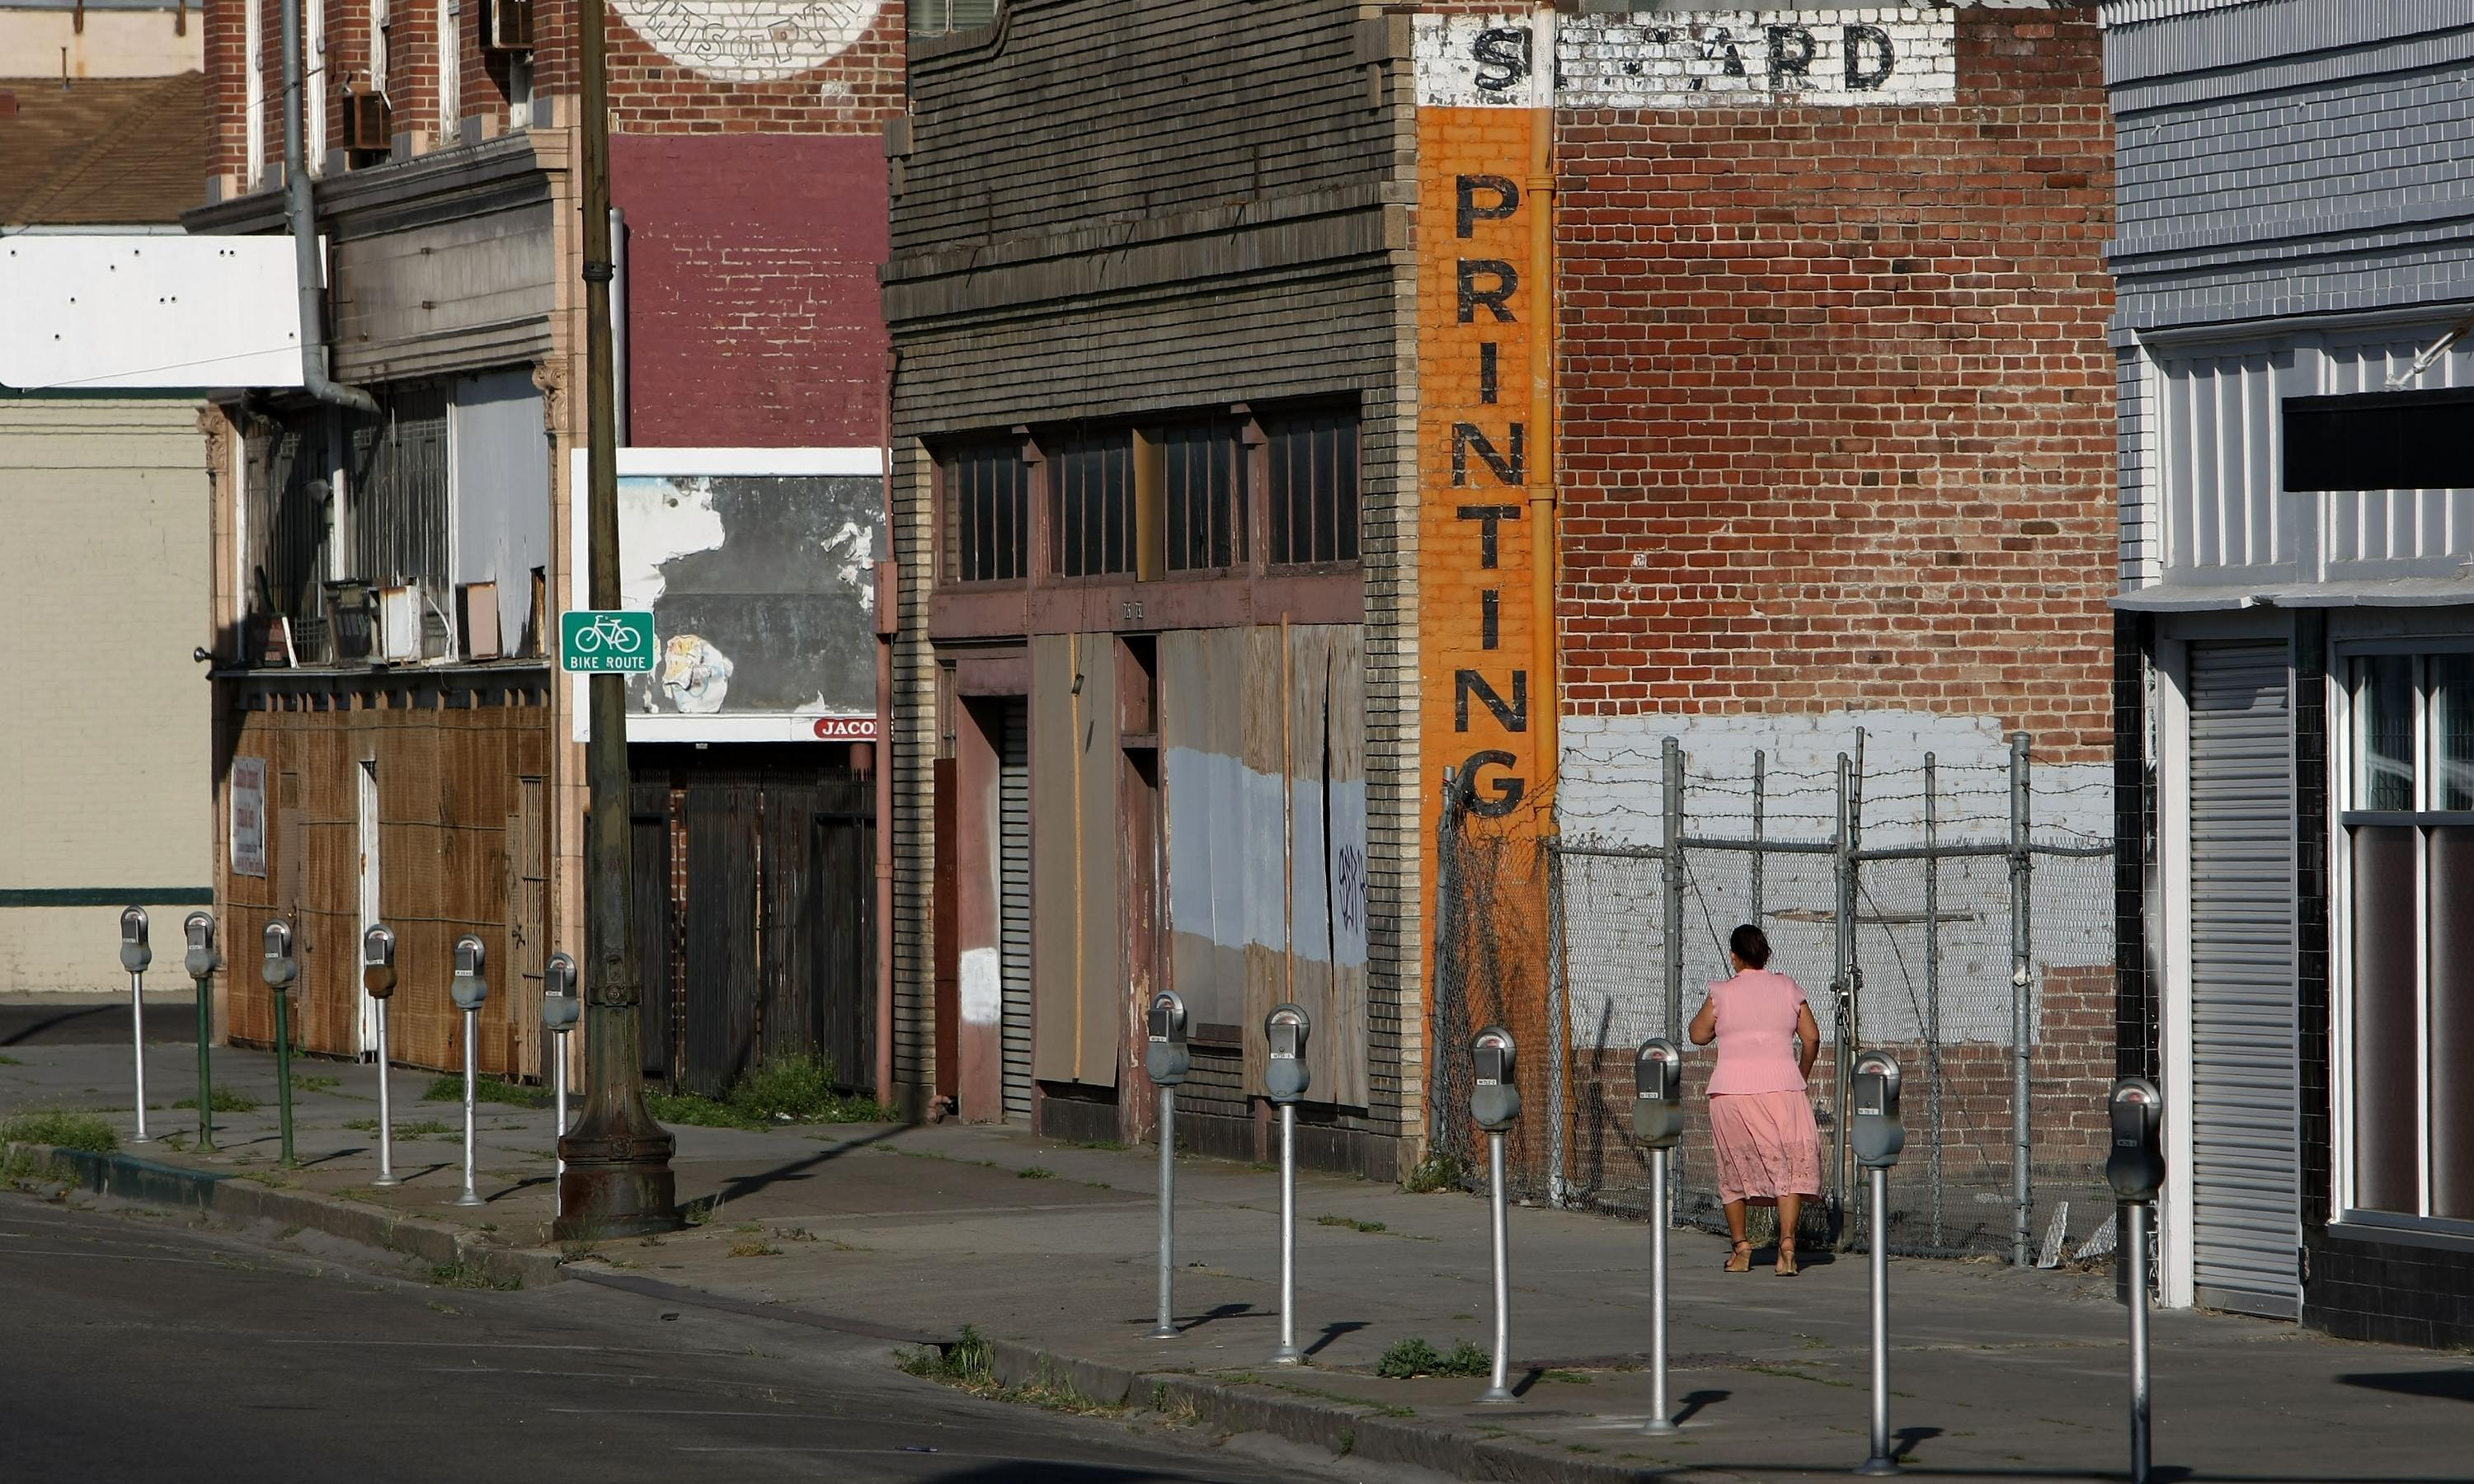 Stockton, California, is the most racially and ethnically diverse city in America